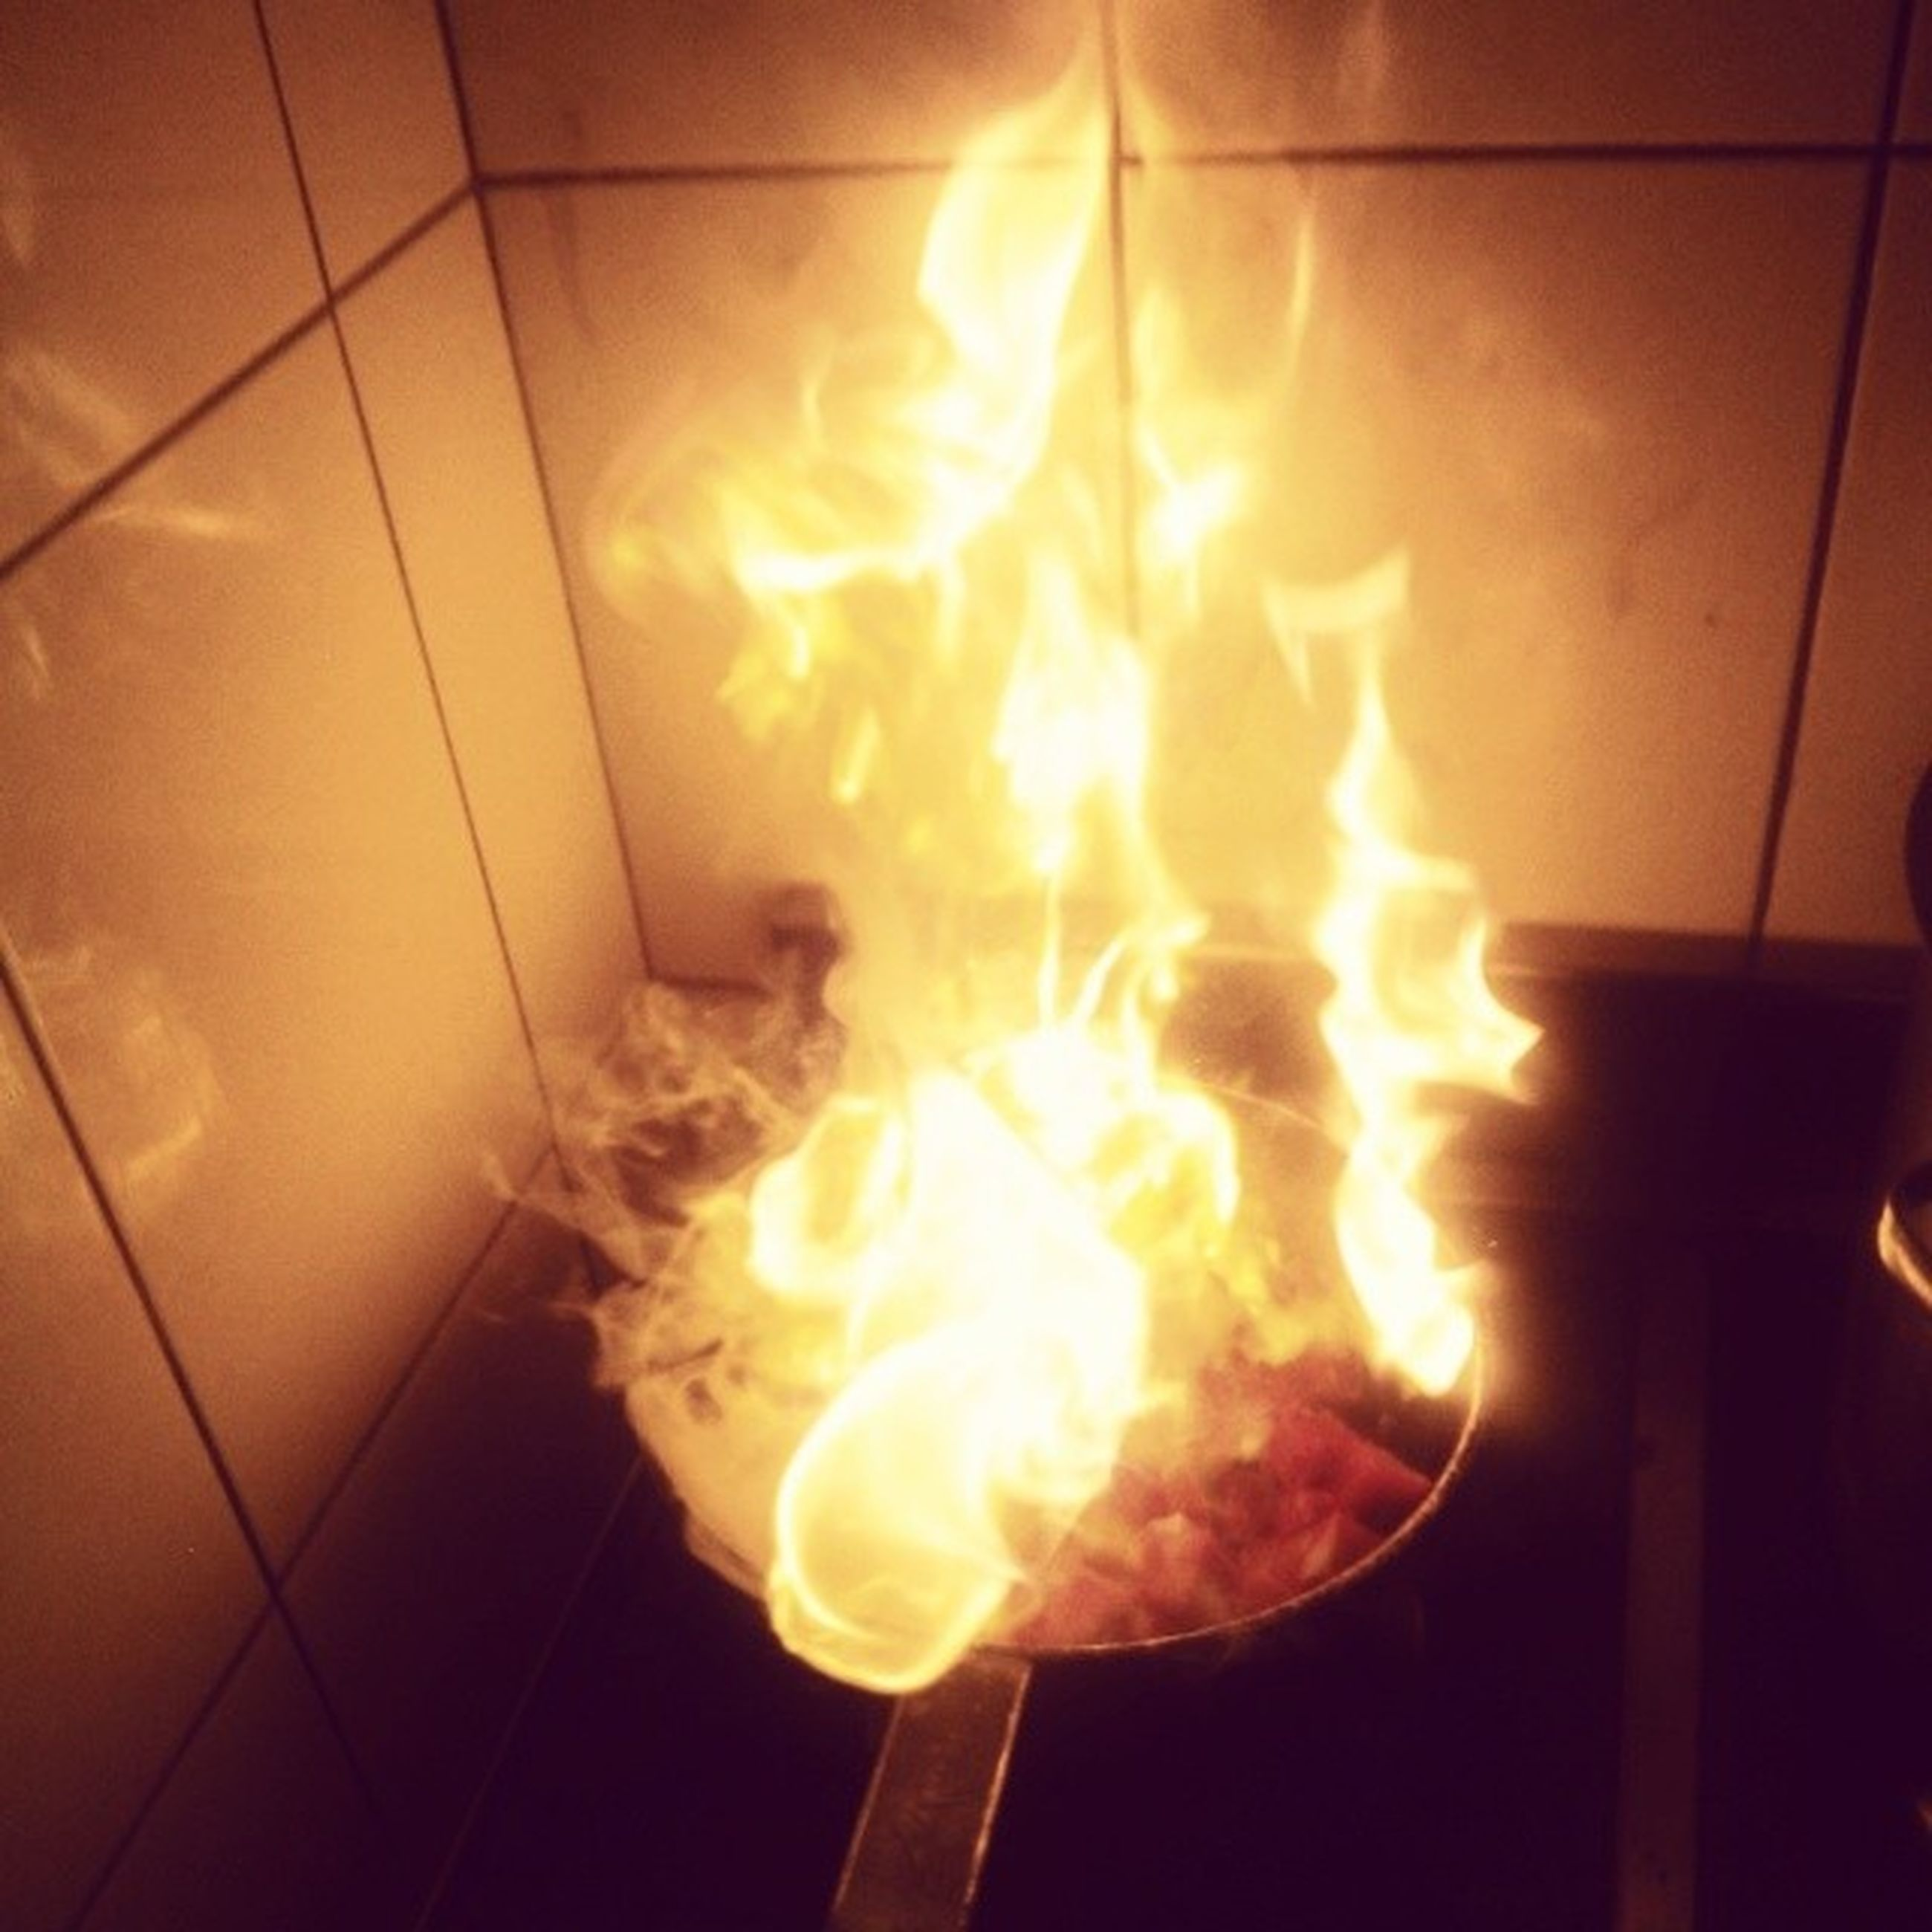 indoors, flame, heat - temperature, illuminated, burning, fire - natural phenomenon, glowing, light - natural phenomenon, lighting equipment, close-up, night, fire, lit, no people, electricity, wall - building feature, yellow, high angle view, metal, orange color